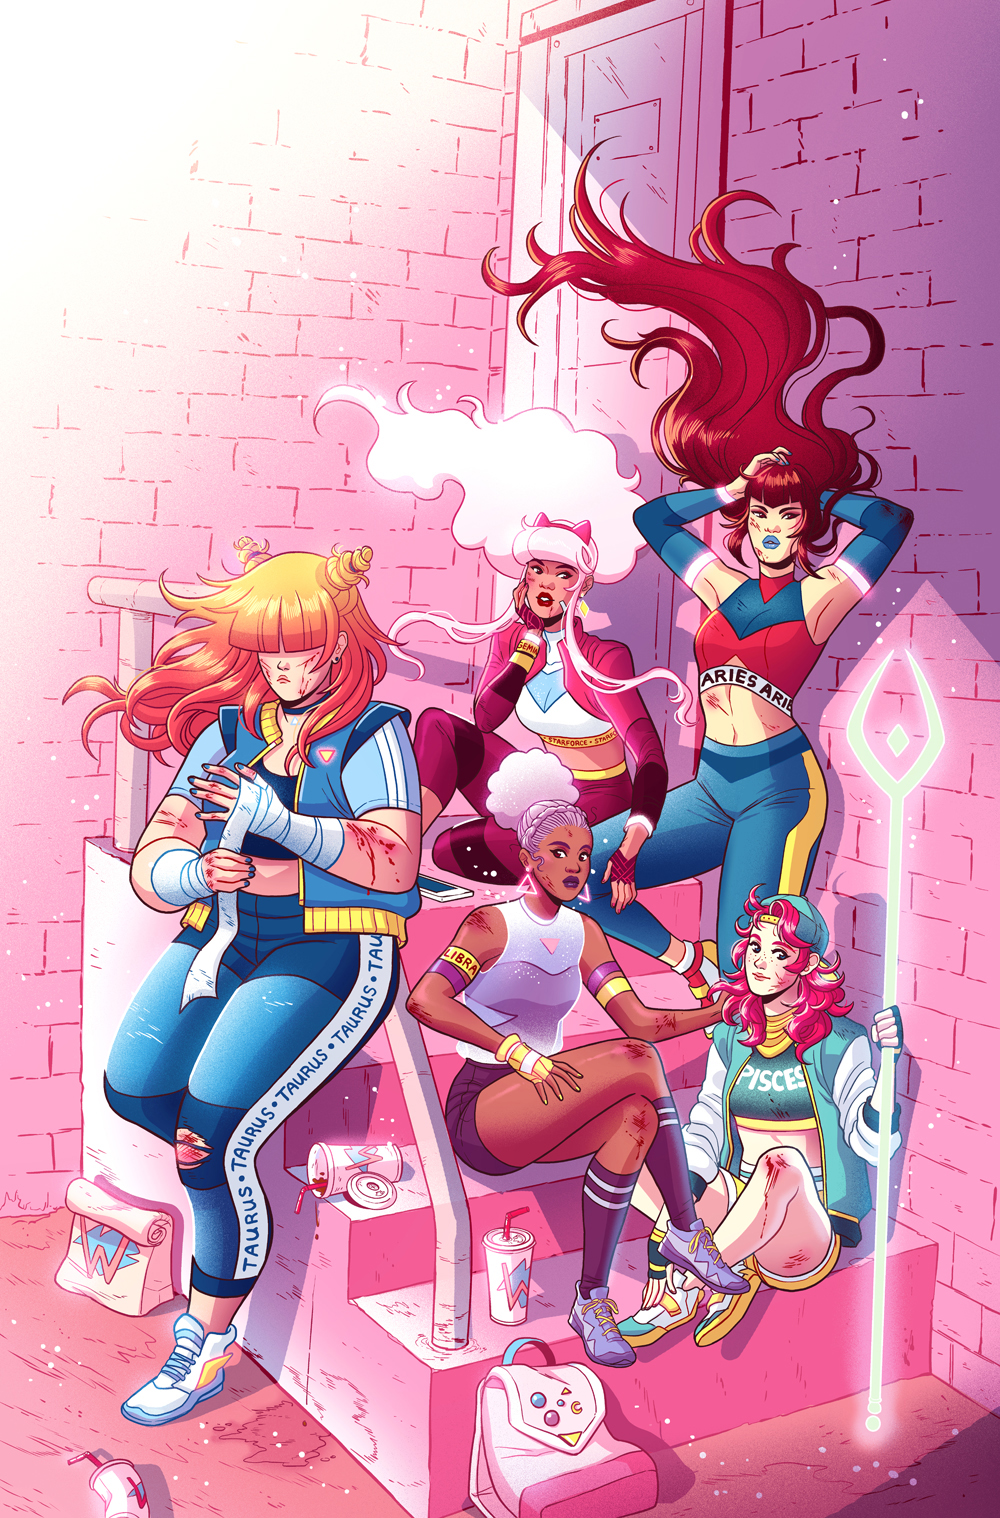 Zodiac Starforce: Cries of the Fire Prince Issue 4 cover- Dark Horse Comics